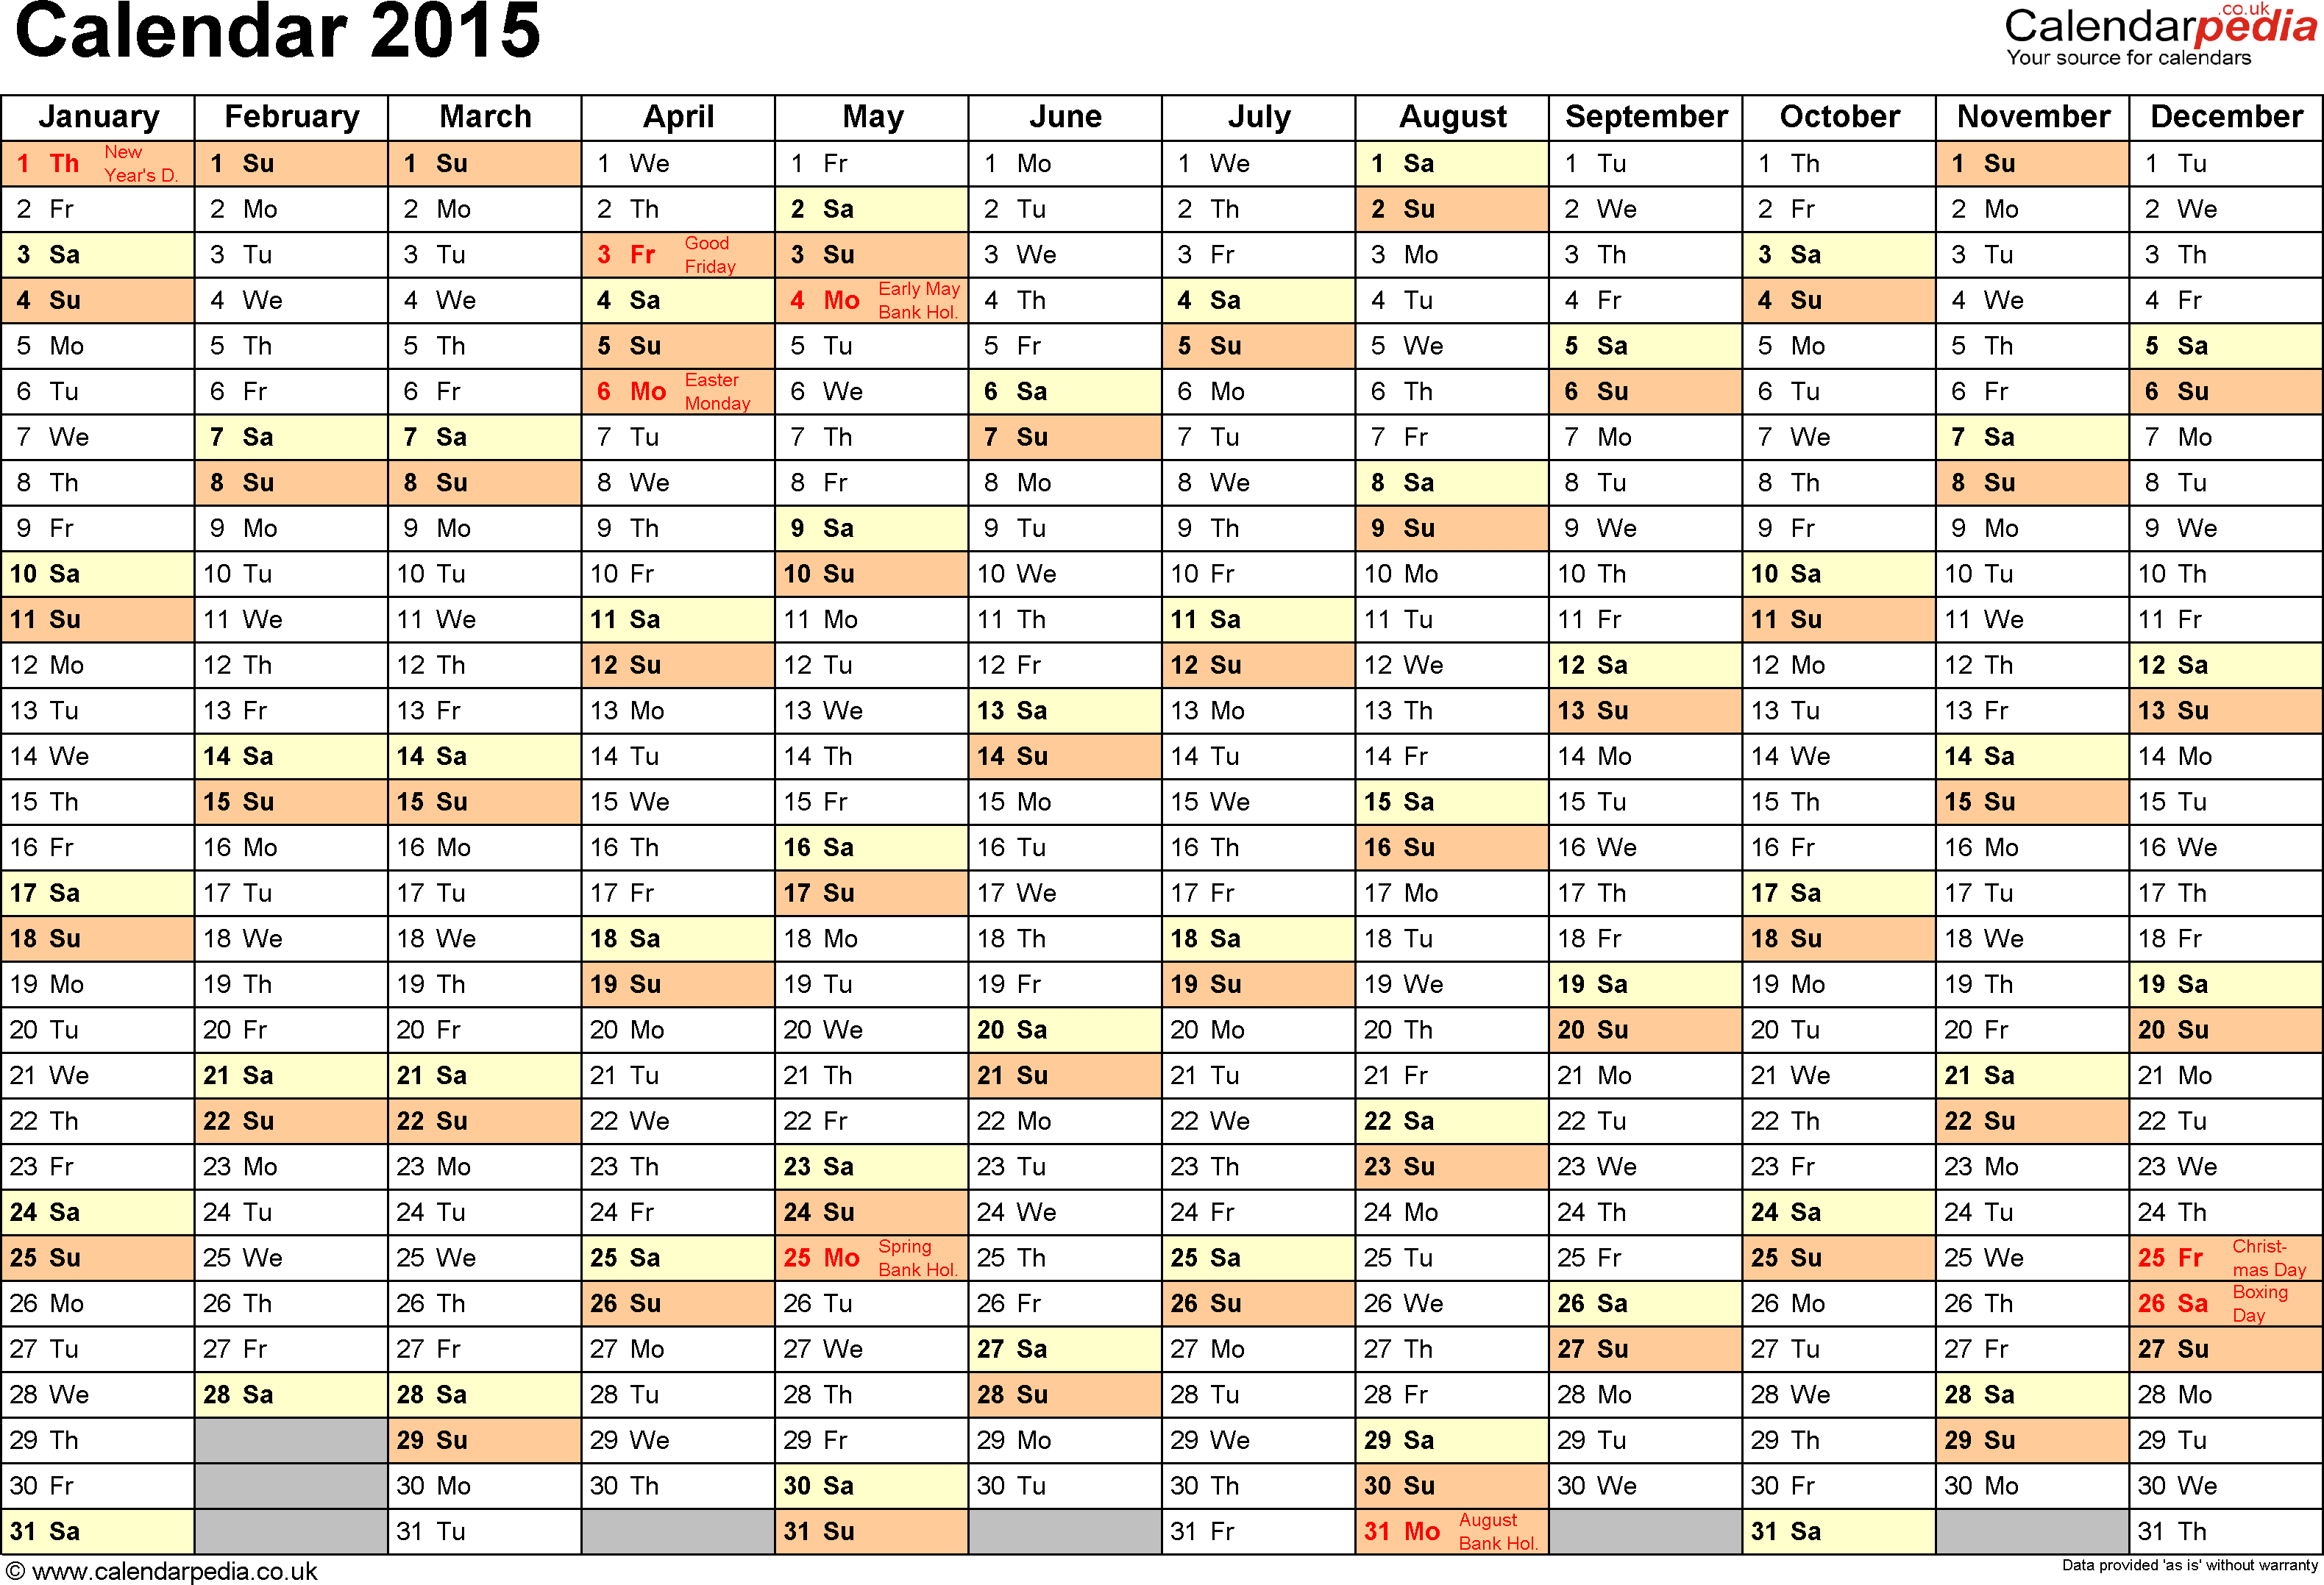 Template 2: Yearly calendar 2015 as Word template, landscape orientation, A4, 1 page, months horizontally, days vertically, with UK bank holidays and week numbers